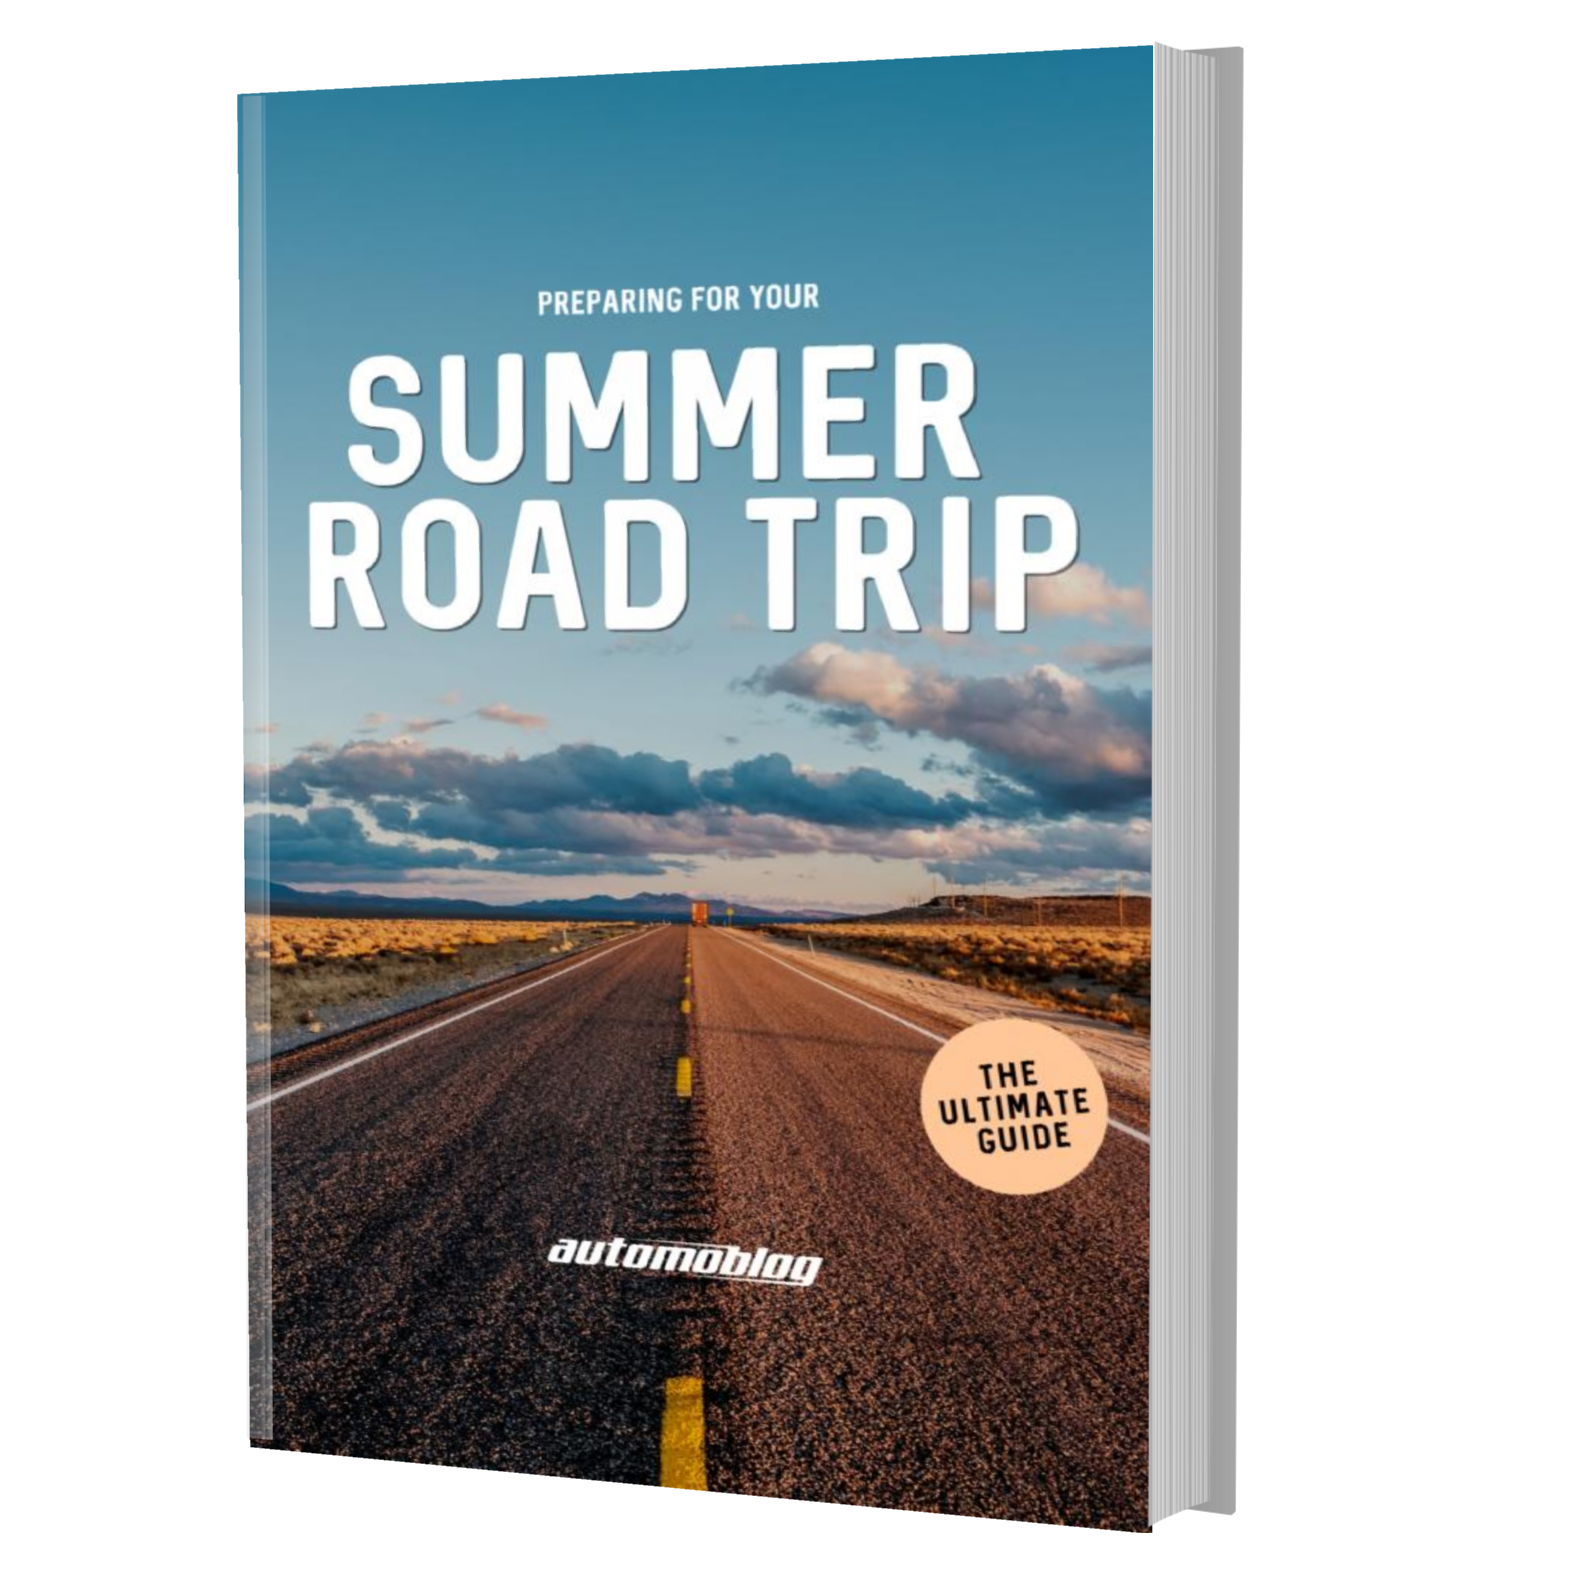 Preparing for Your Summer Road Trip